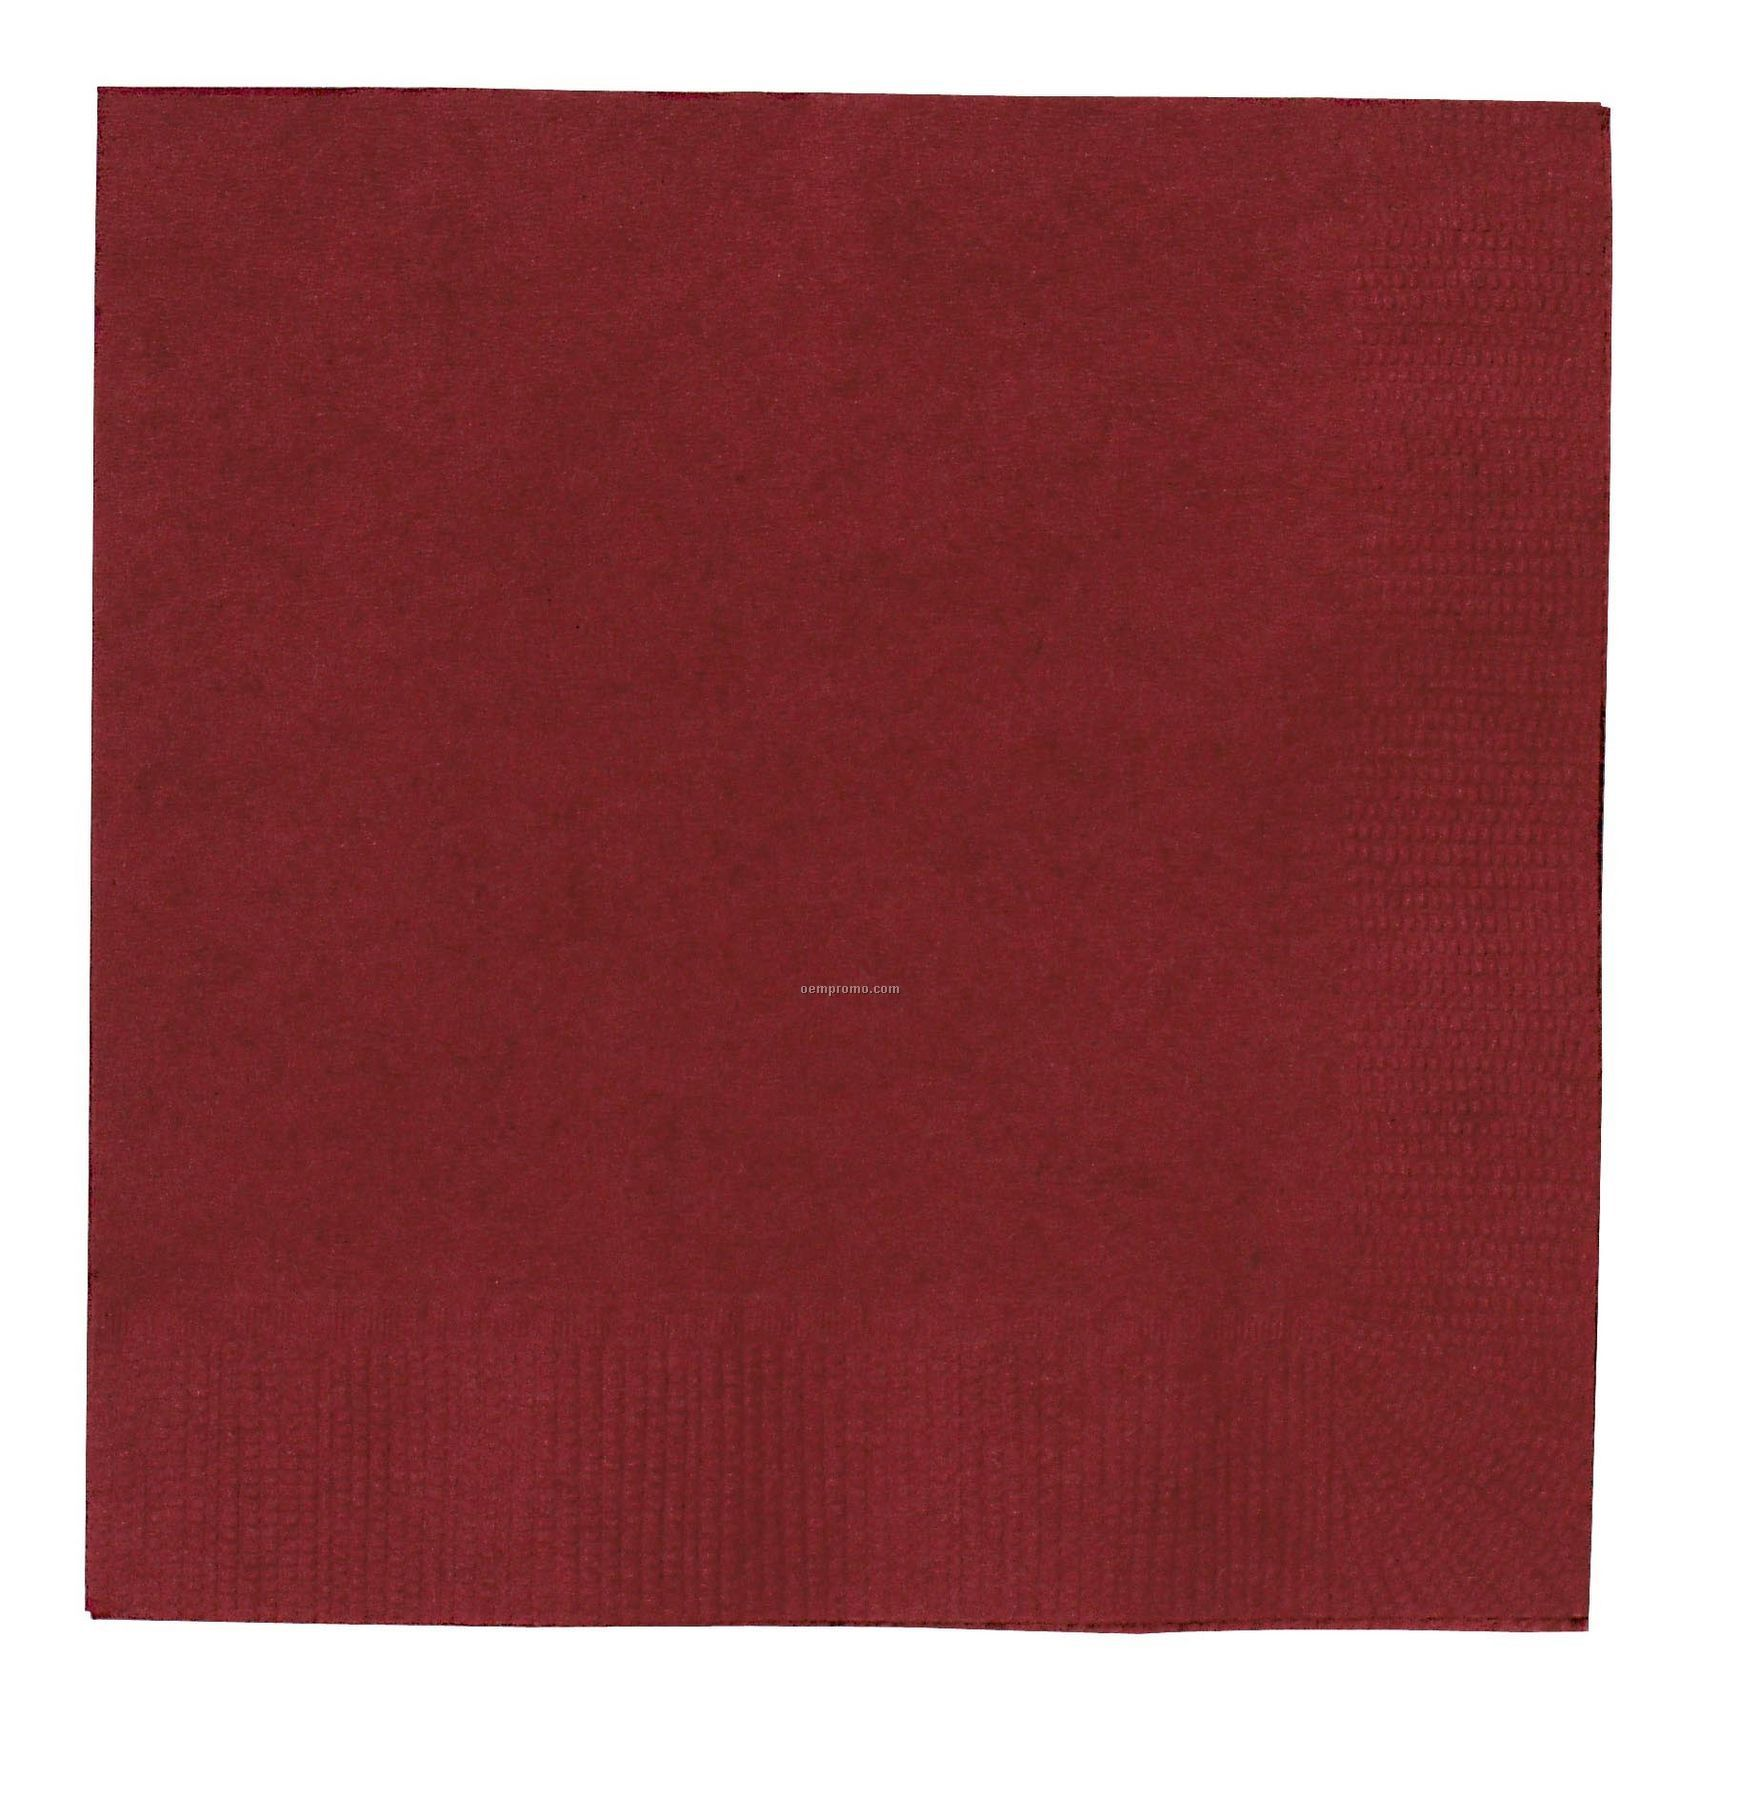 Colorware Burgundy Royale Red Luncheon Napkins